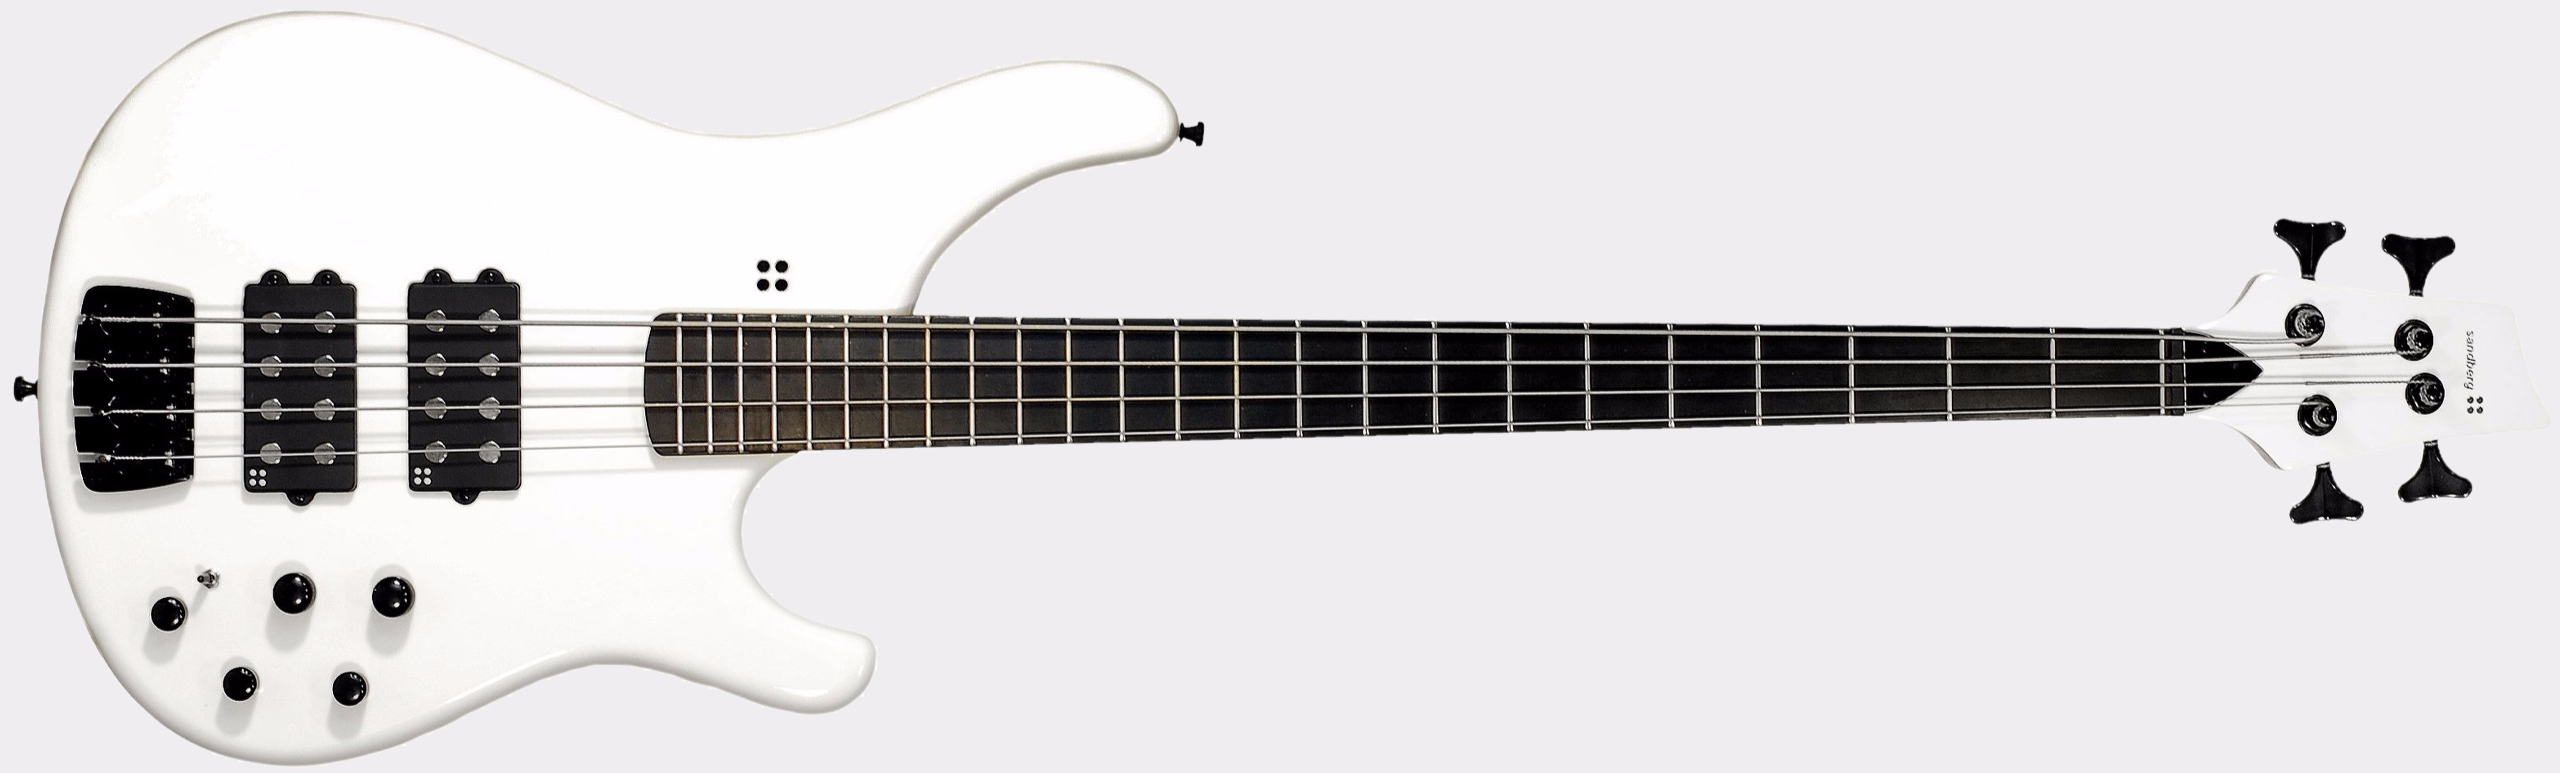 SANDBERG Basic Ken Taylor 4 EB Virgin White Highgloss